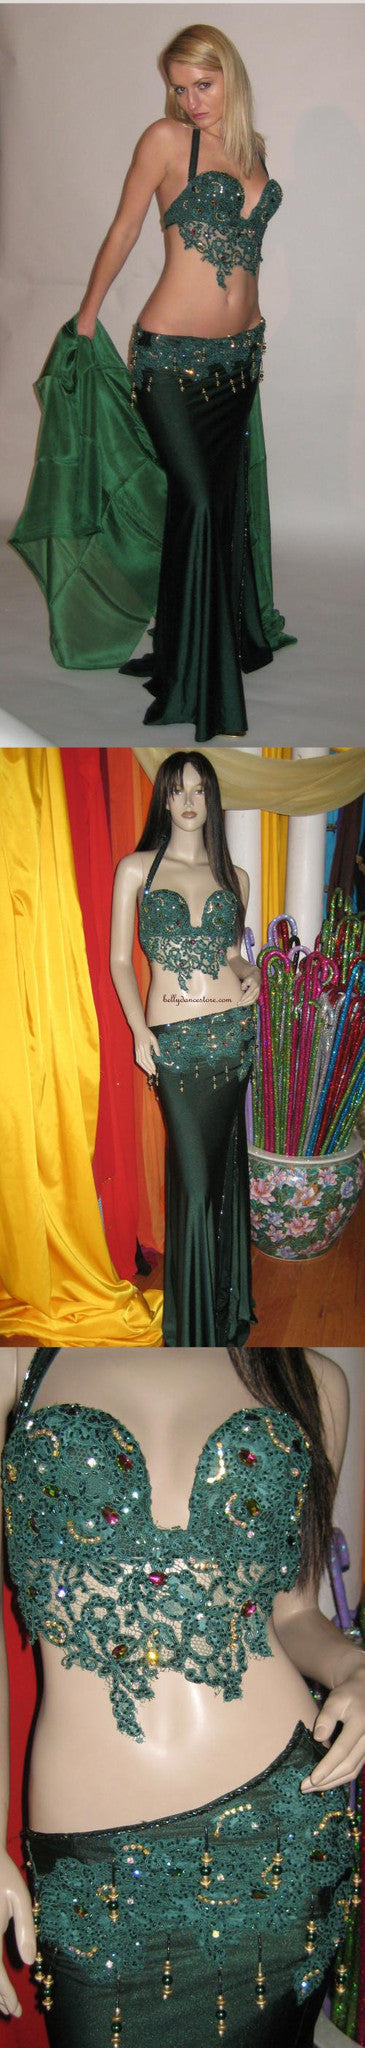 Eman Zaki Two-Piece Costume